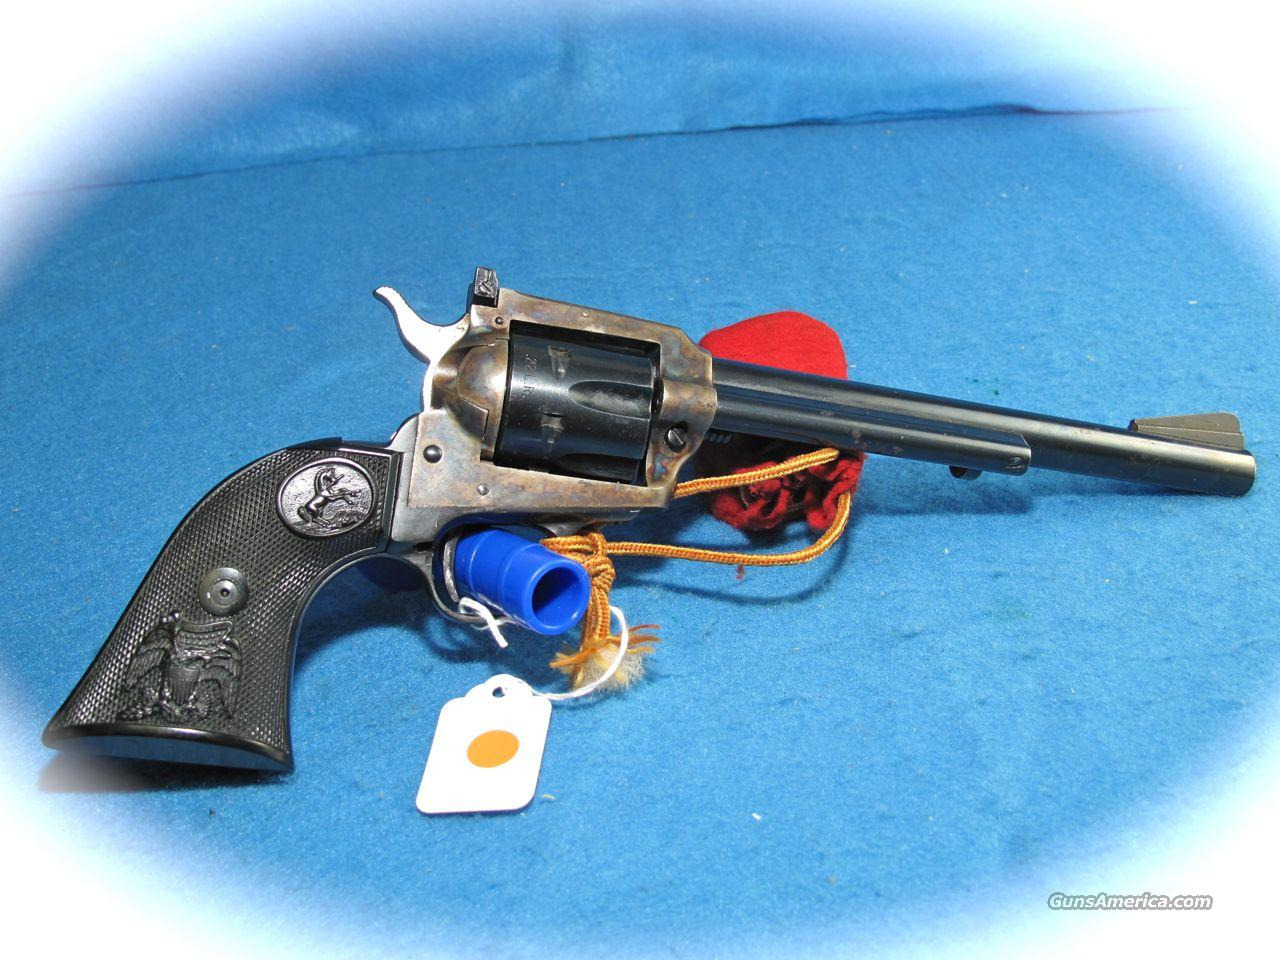 Colt New Frontier Buntline 22 Convertible 7.5 Inch Bbl **USED**  Guns > Pistols > Colt Single Action Revolvers - Modern (22 Cal.)